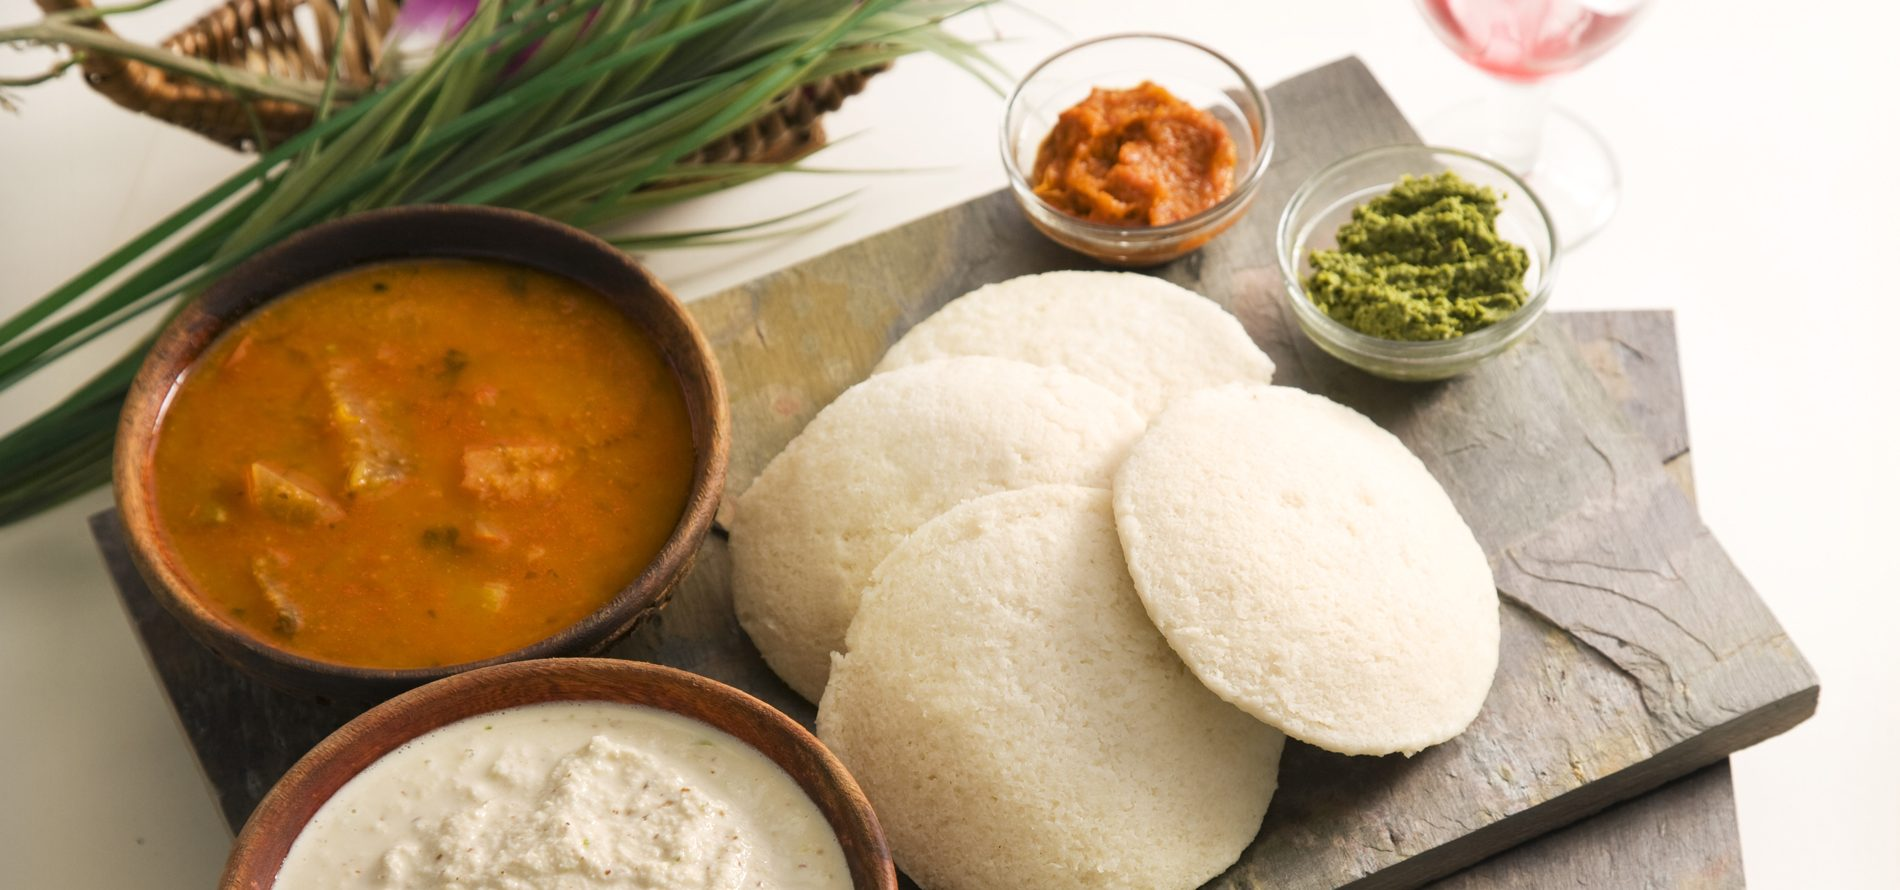 Go! Food Tour of India with Gold Medal Plates Winner Chef Thottungal